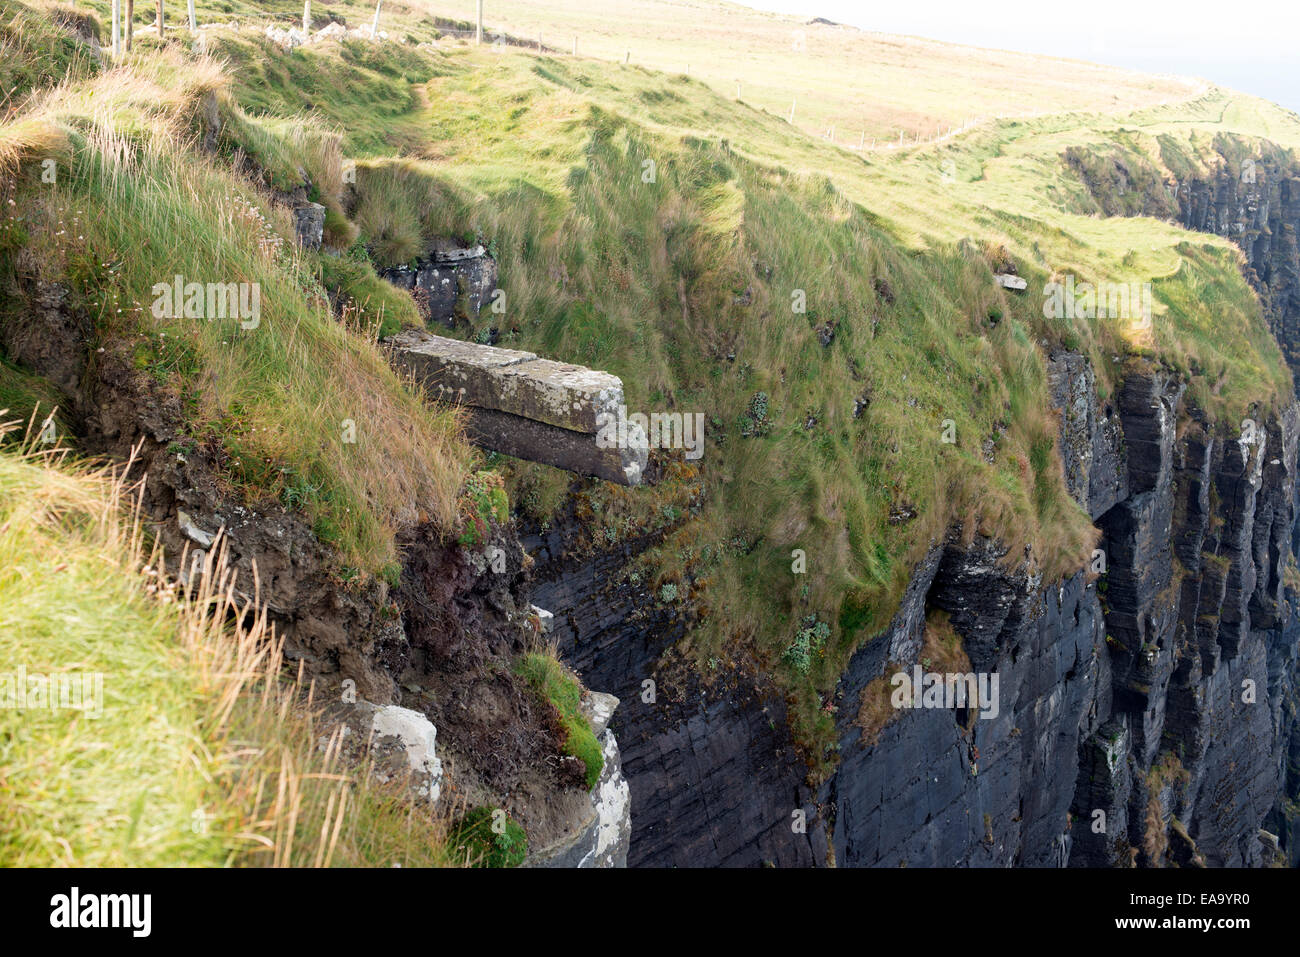 particular of the cliffs edge - Stock Image